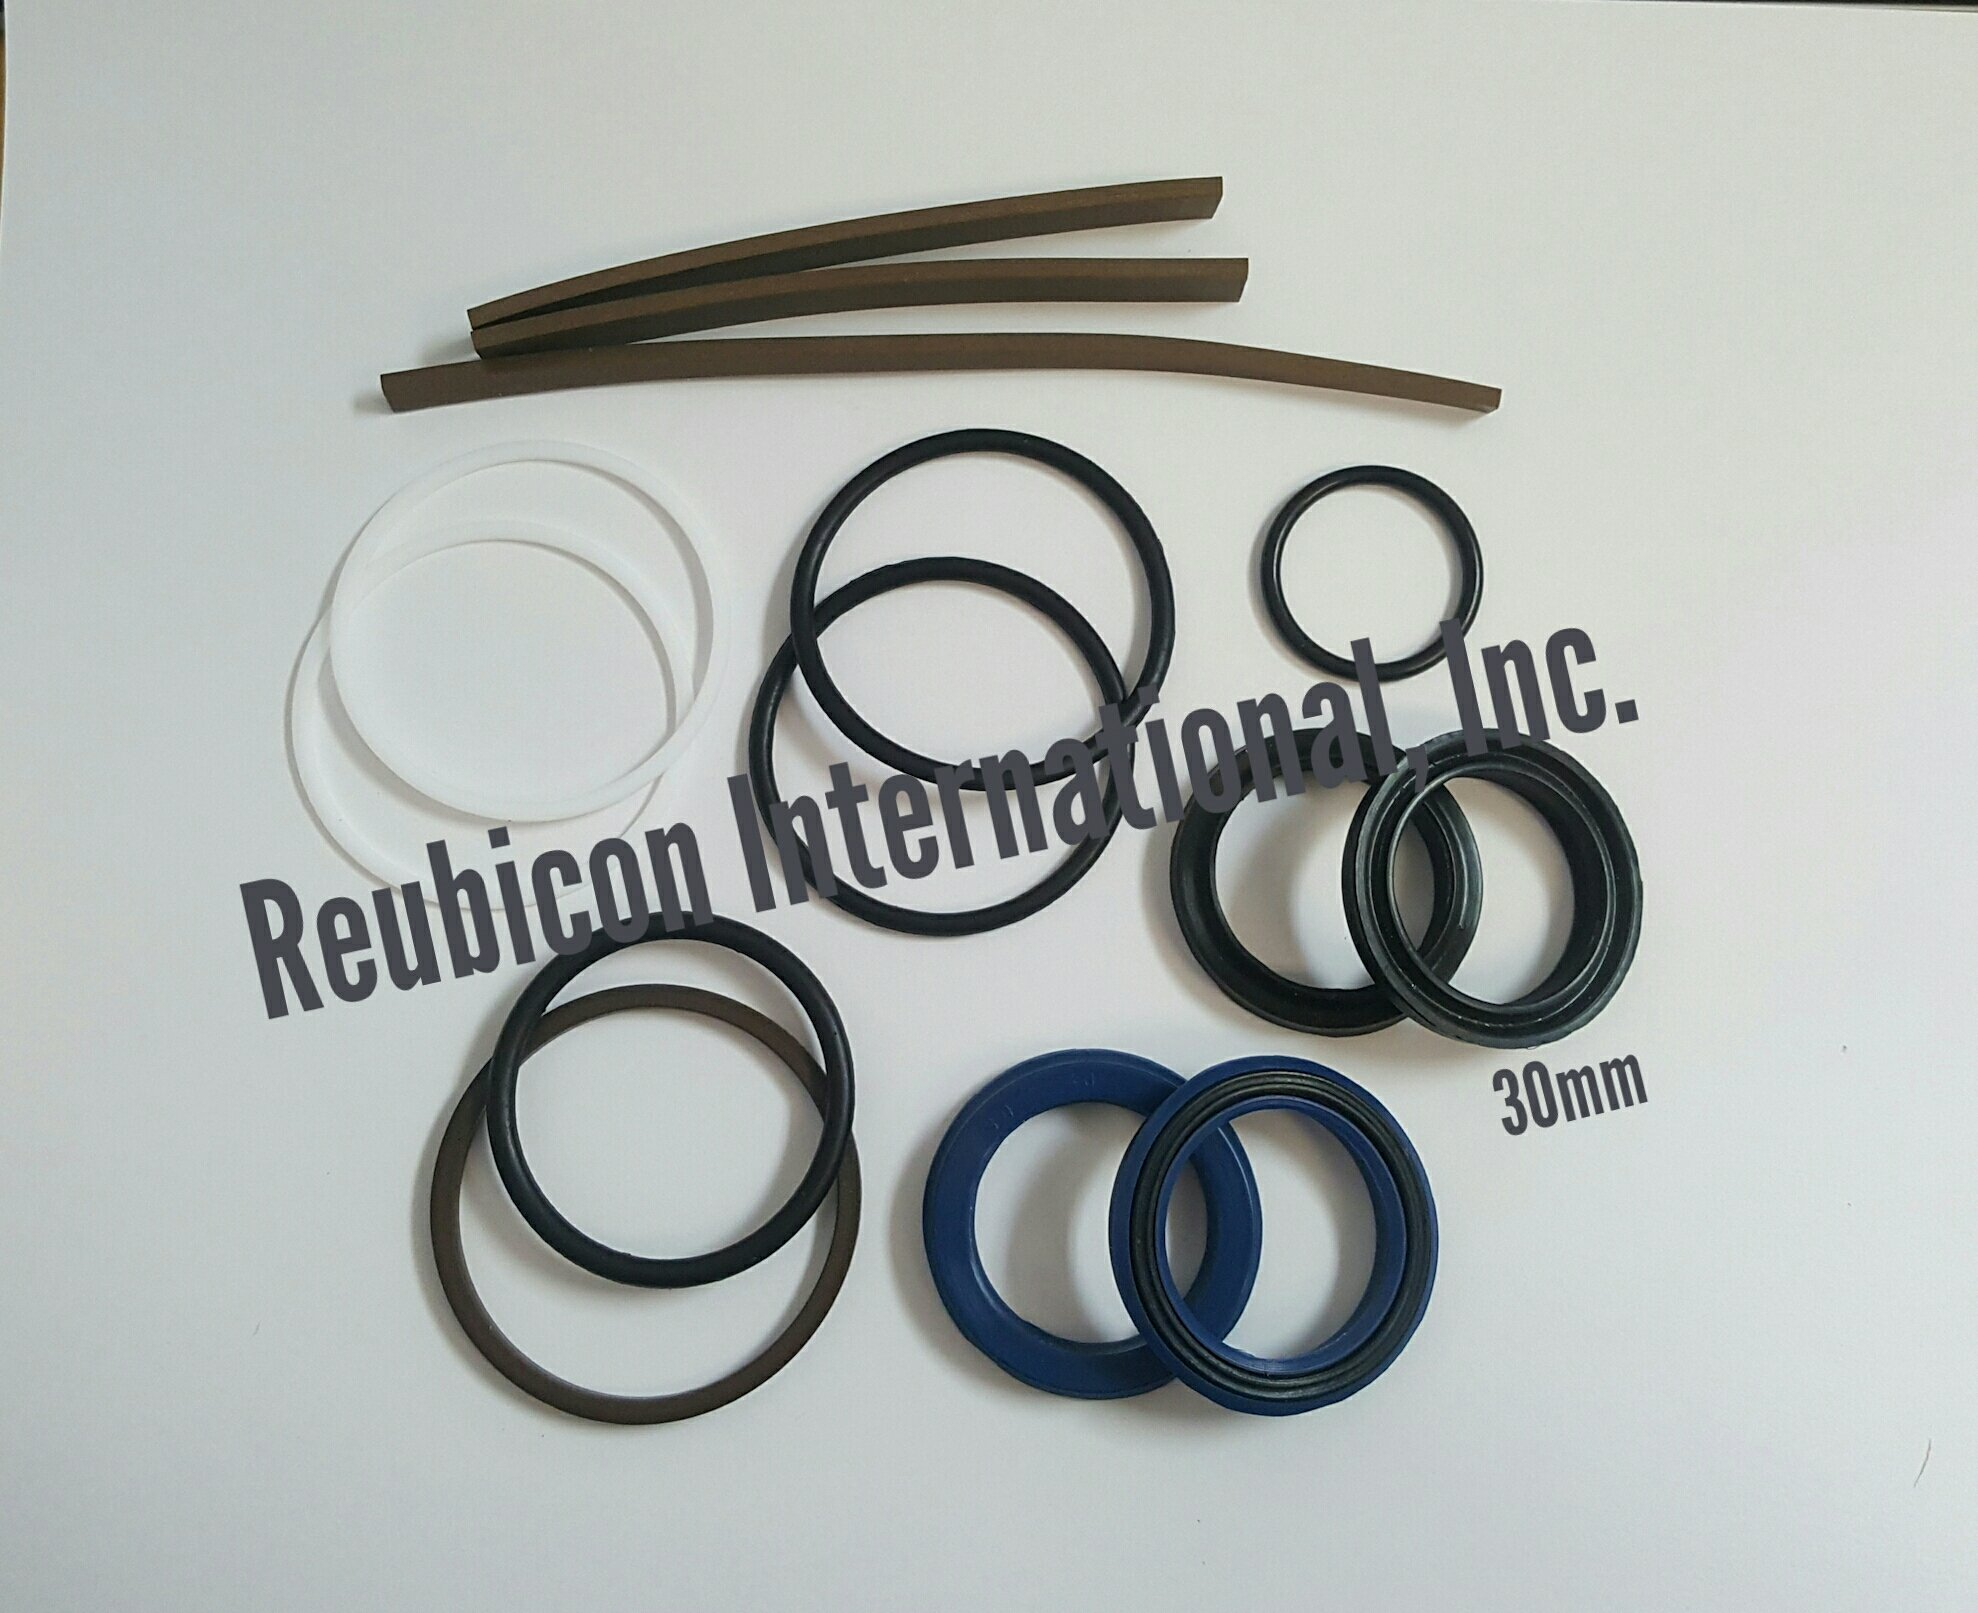 Mahindra Tractor Power Steering Cylinder Repair Kit 1 1/4'' 30mm - 35mm